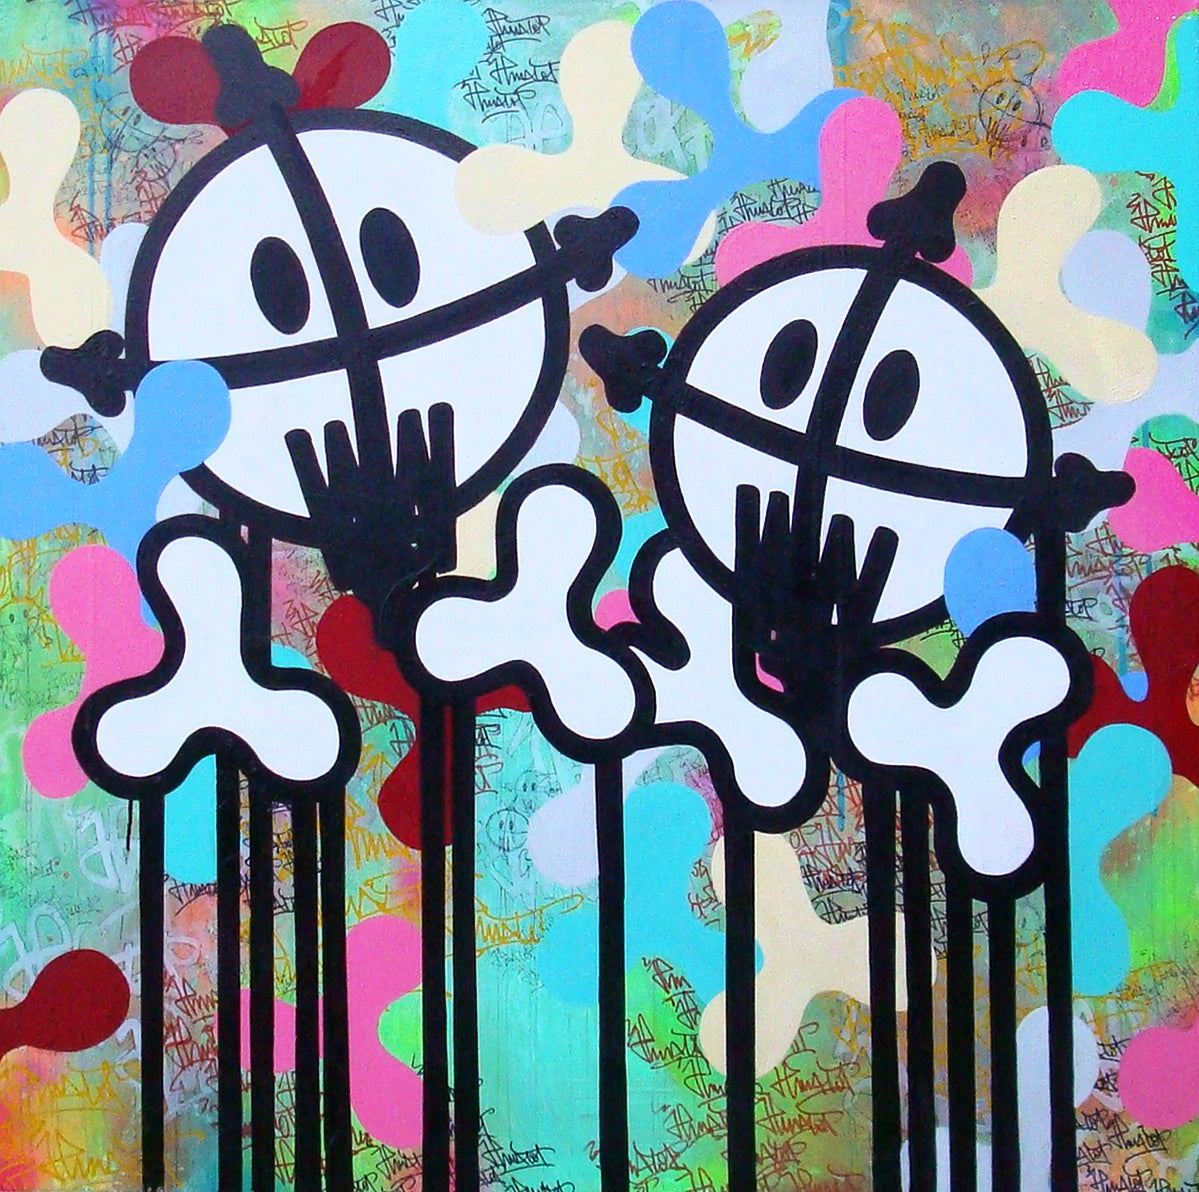 Image of Streets Ghosts 100x100 cm 2011